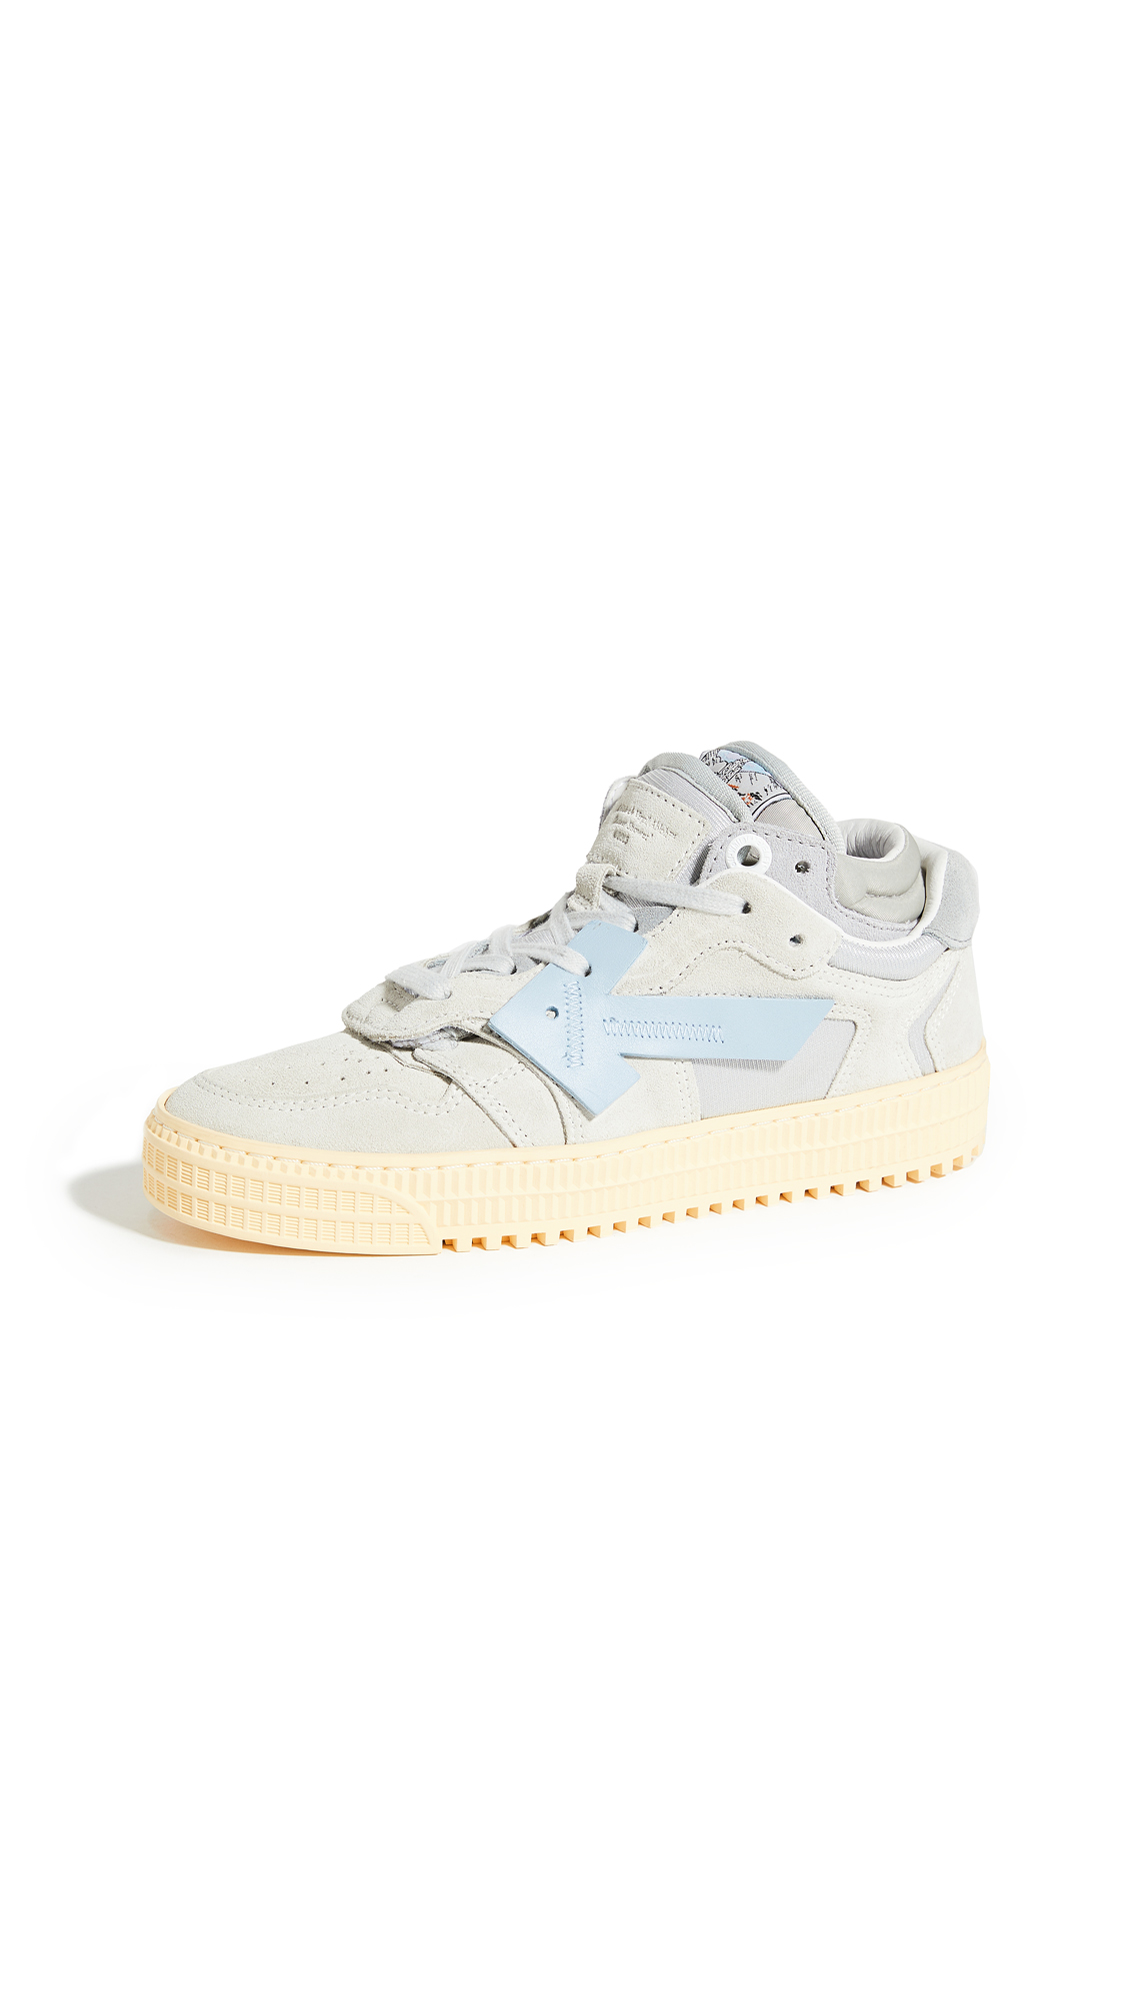 Off-White 3.0 Low Sneakers - 40% Off Sale